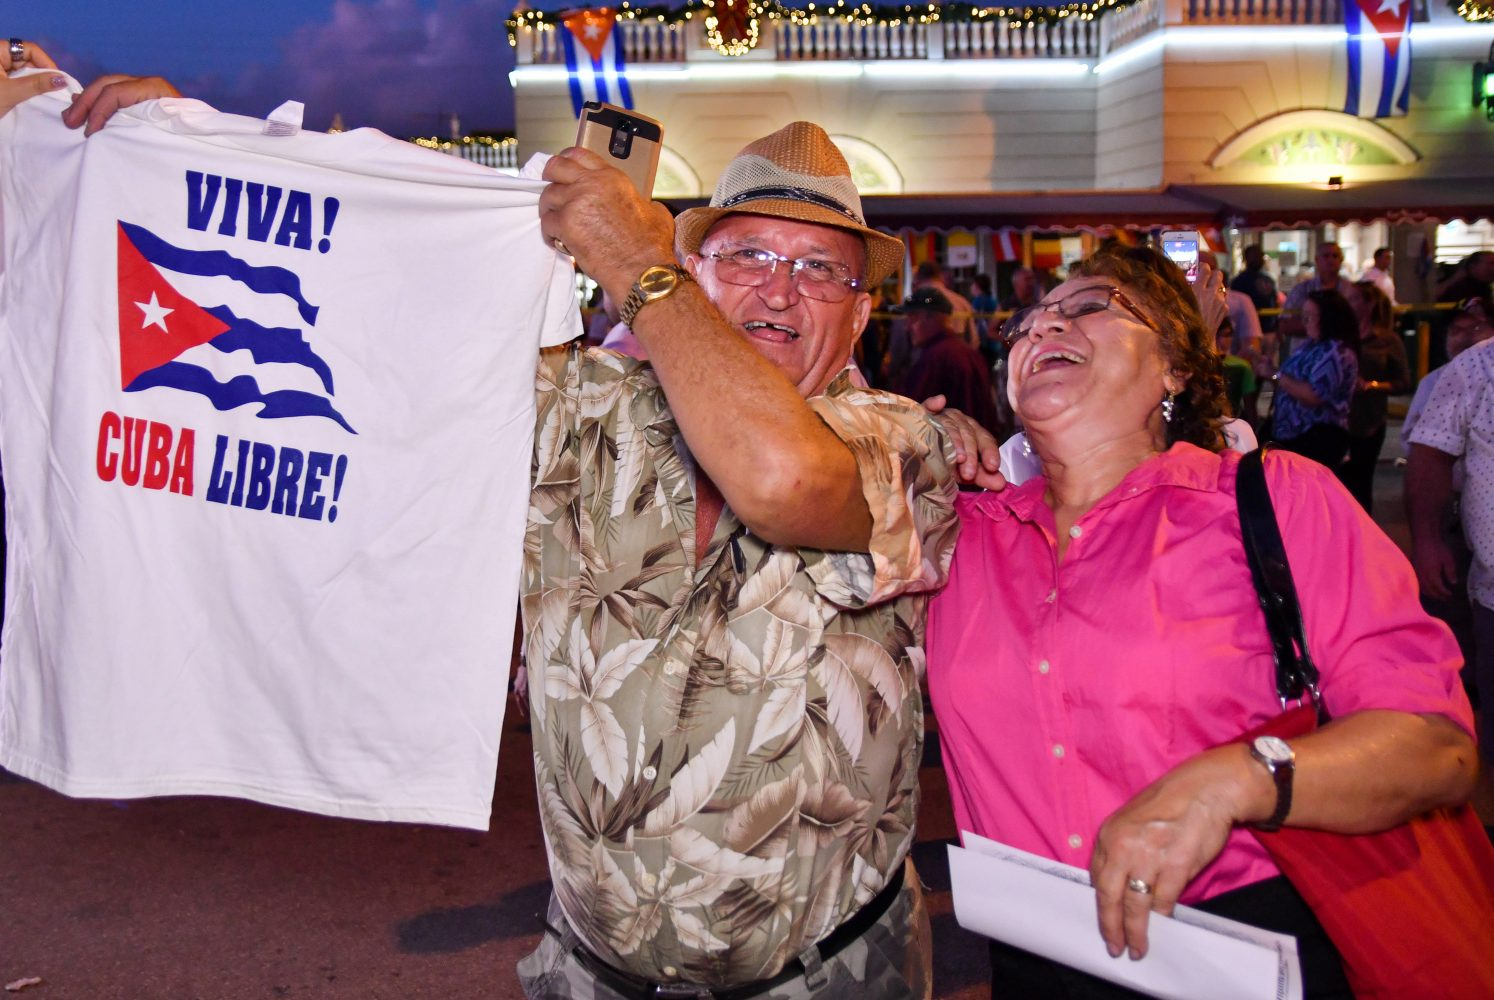 The Cuban community of Miami celebrates in the streets following the death of Fidel Castro (Grace King/WUFT News)